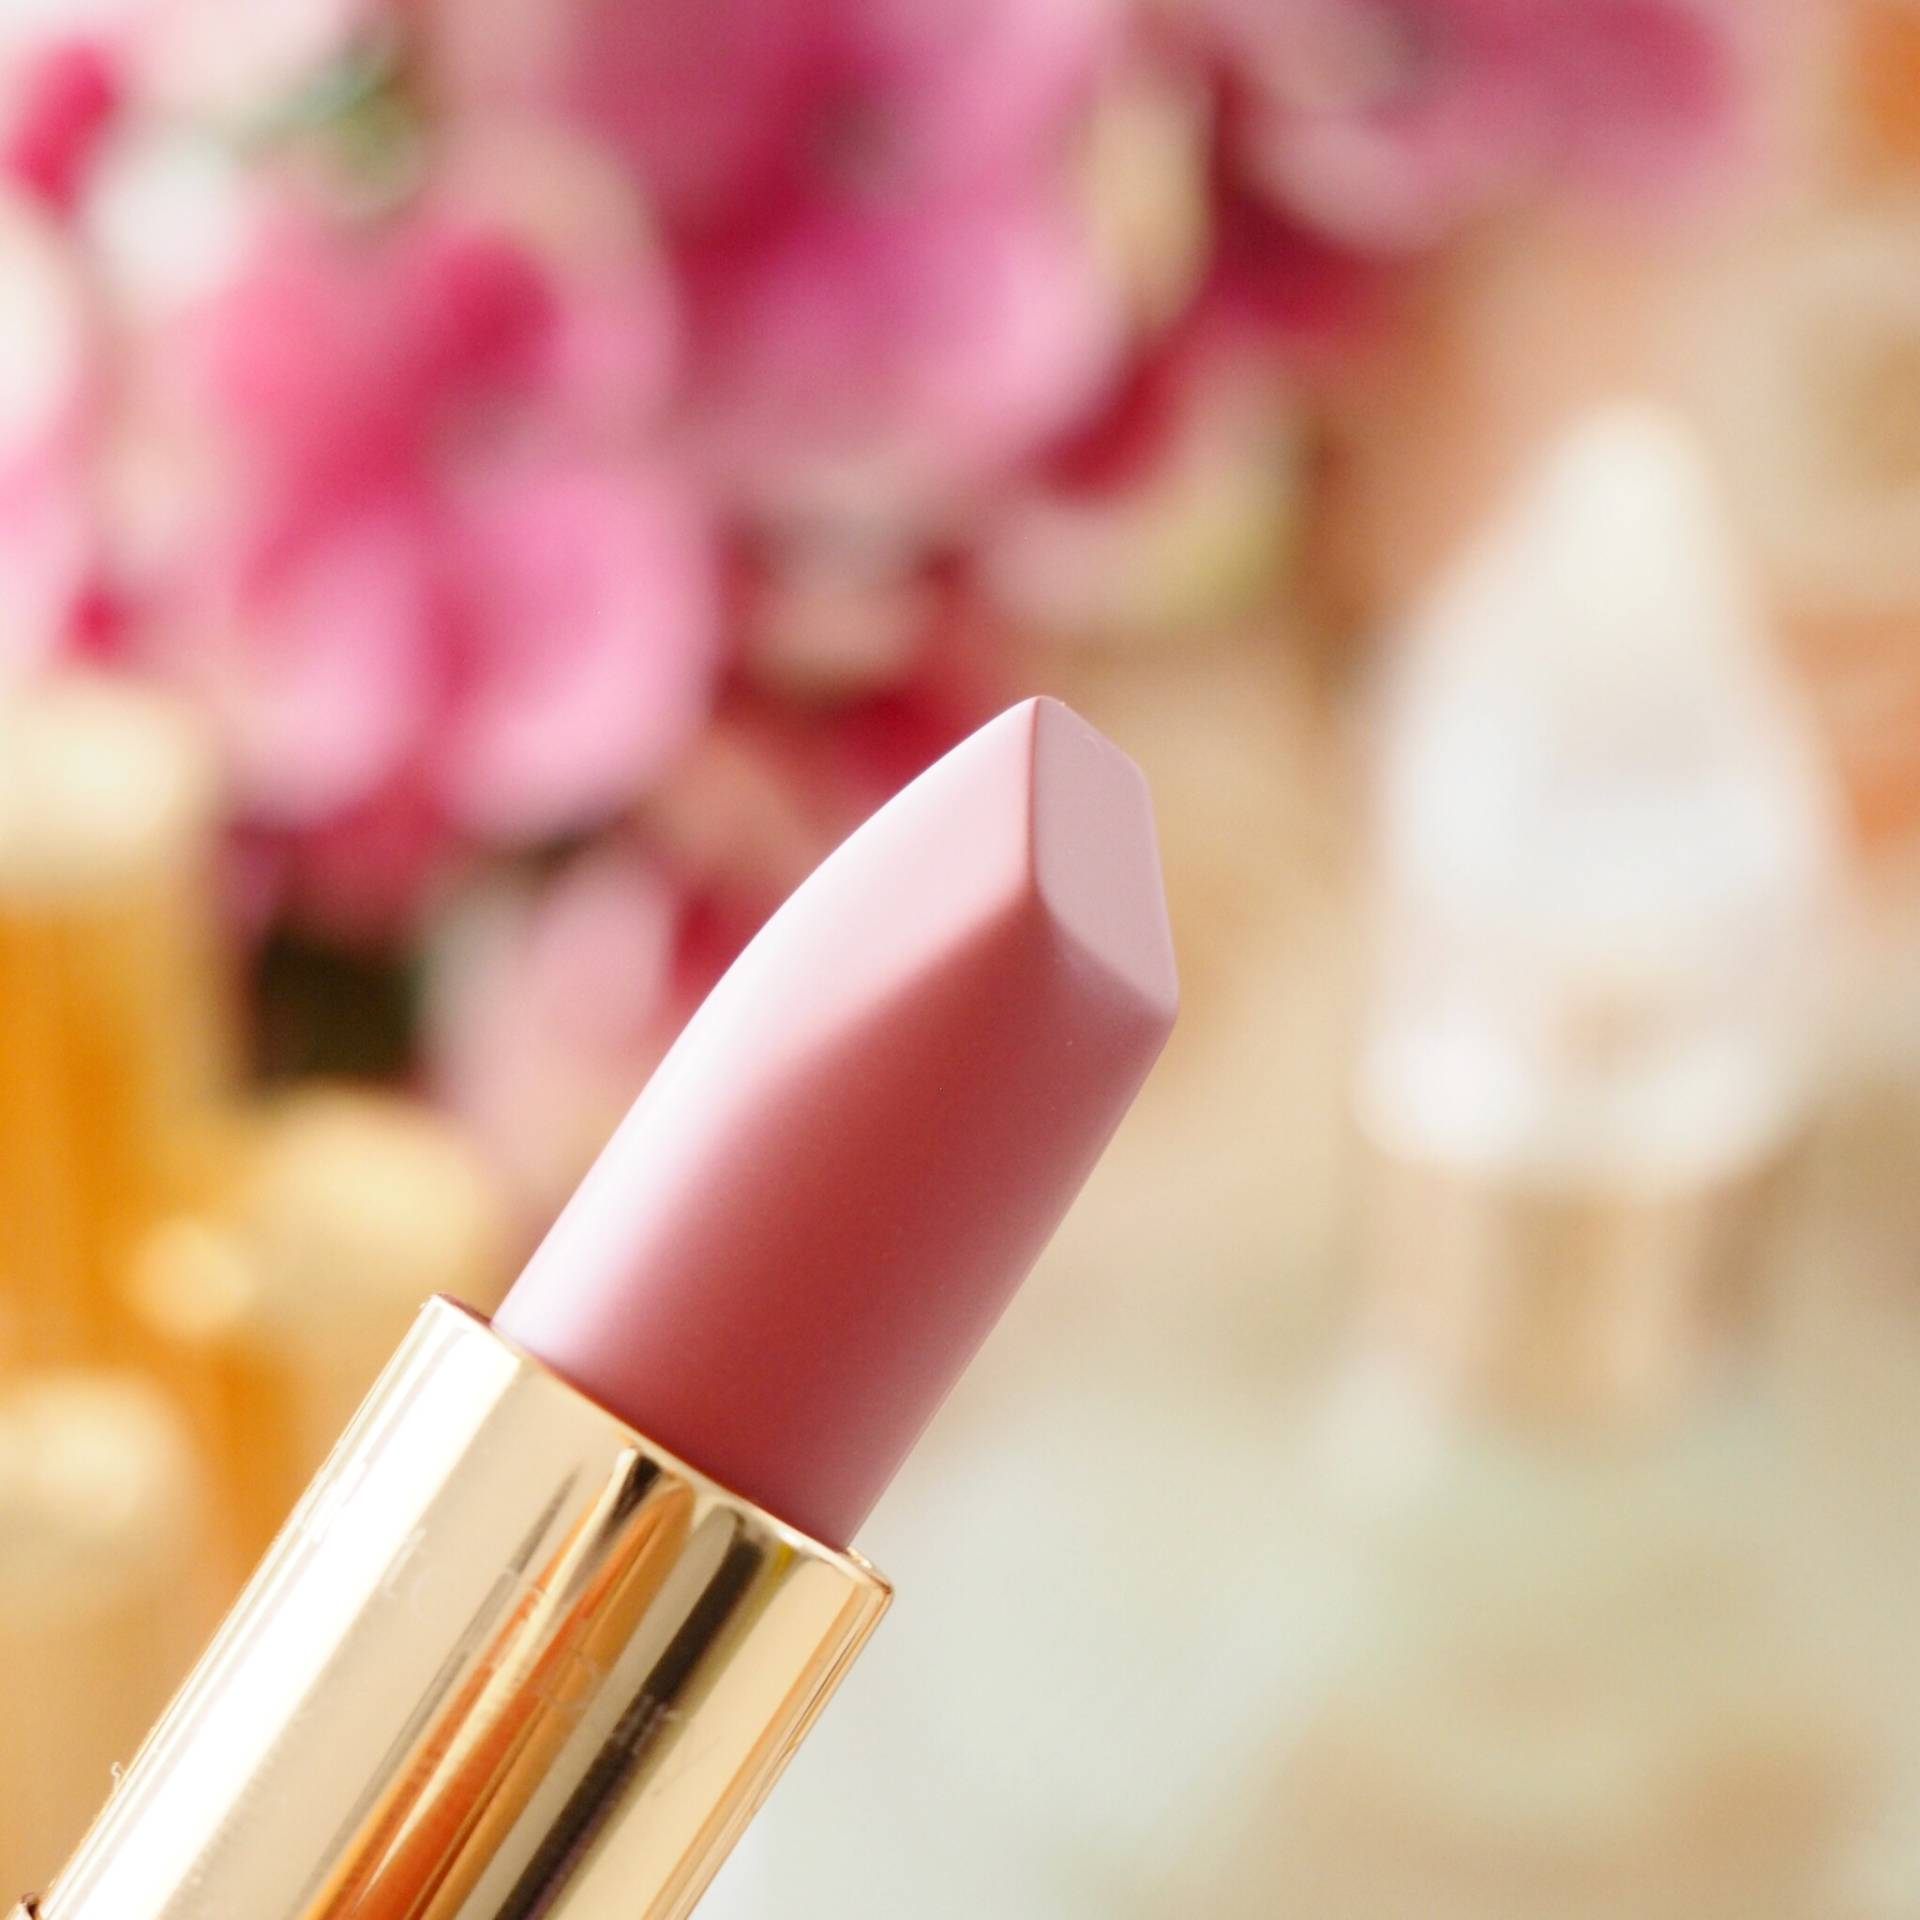 Charlotte Tilbury Between The Sheets Lipstick